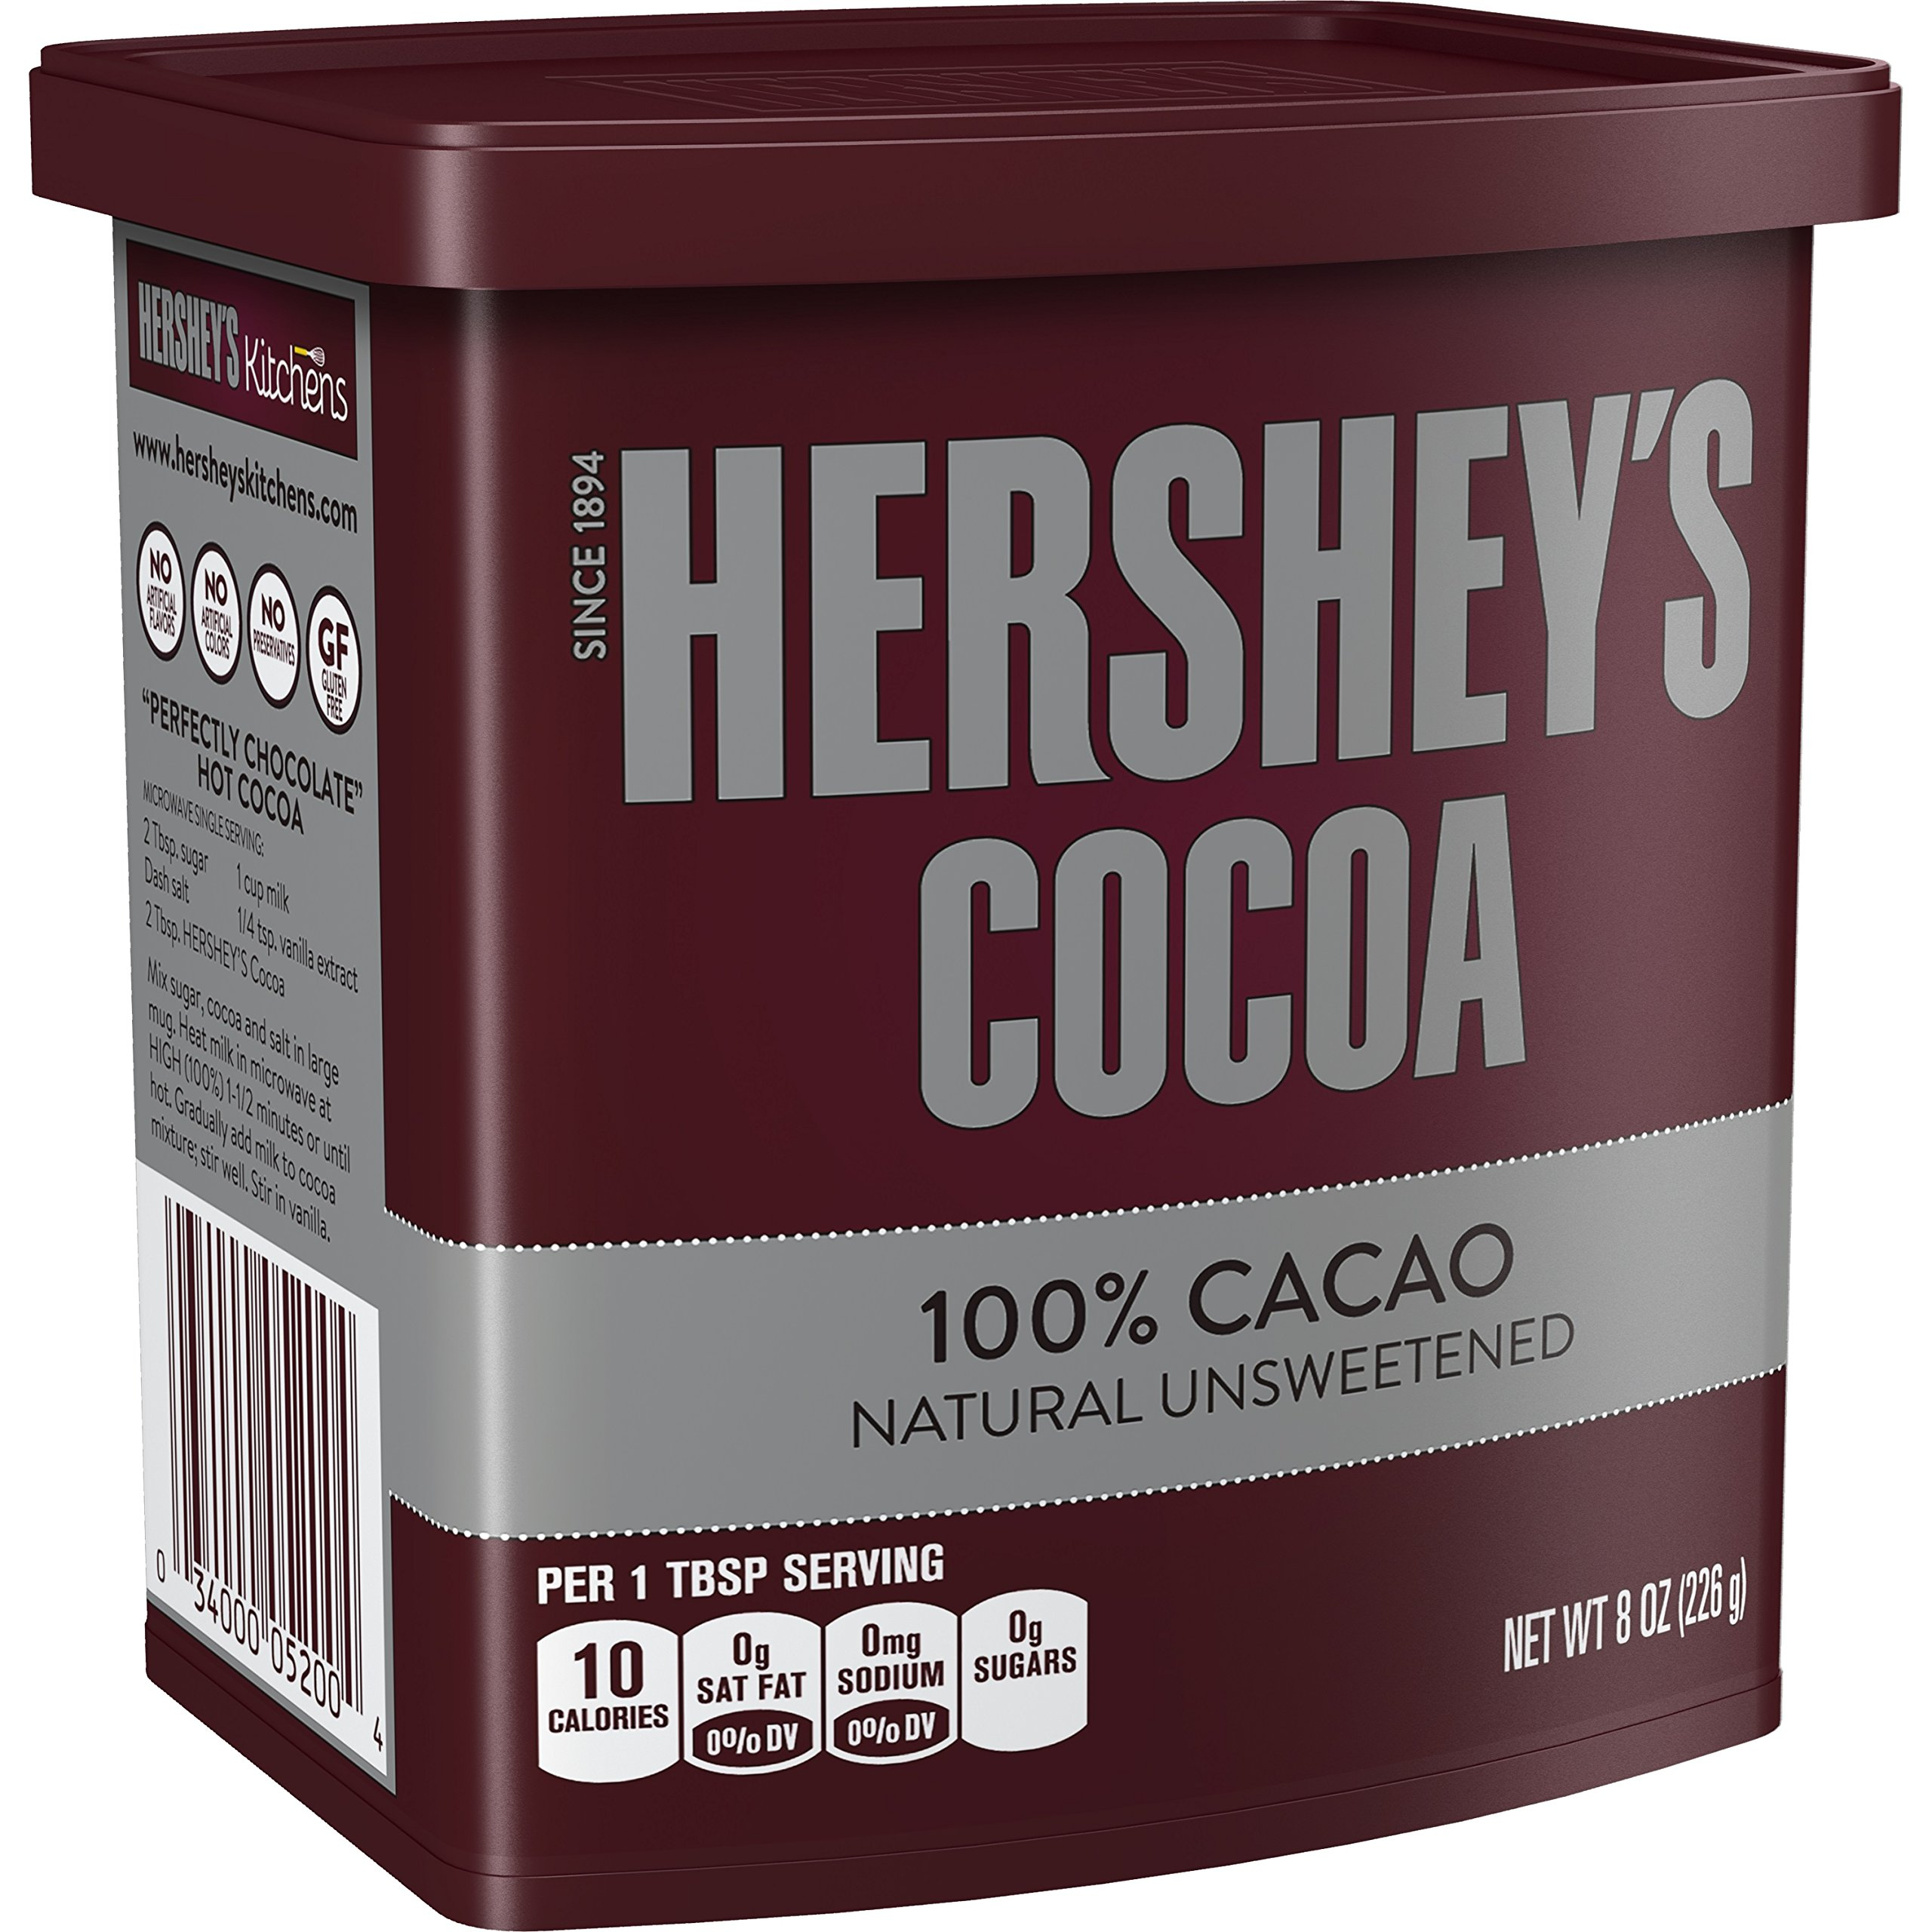 HERSHEY'S Natural Unsweetened 100% Cocoa, Holiday Baking, Hot Cocoa, 8 Ounce Can (Pack of 6)